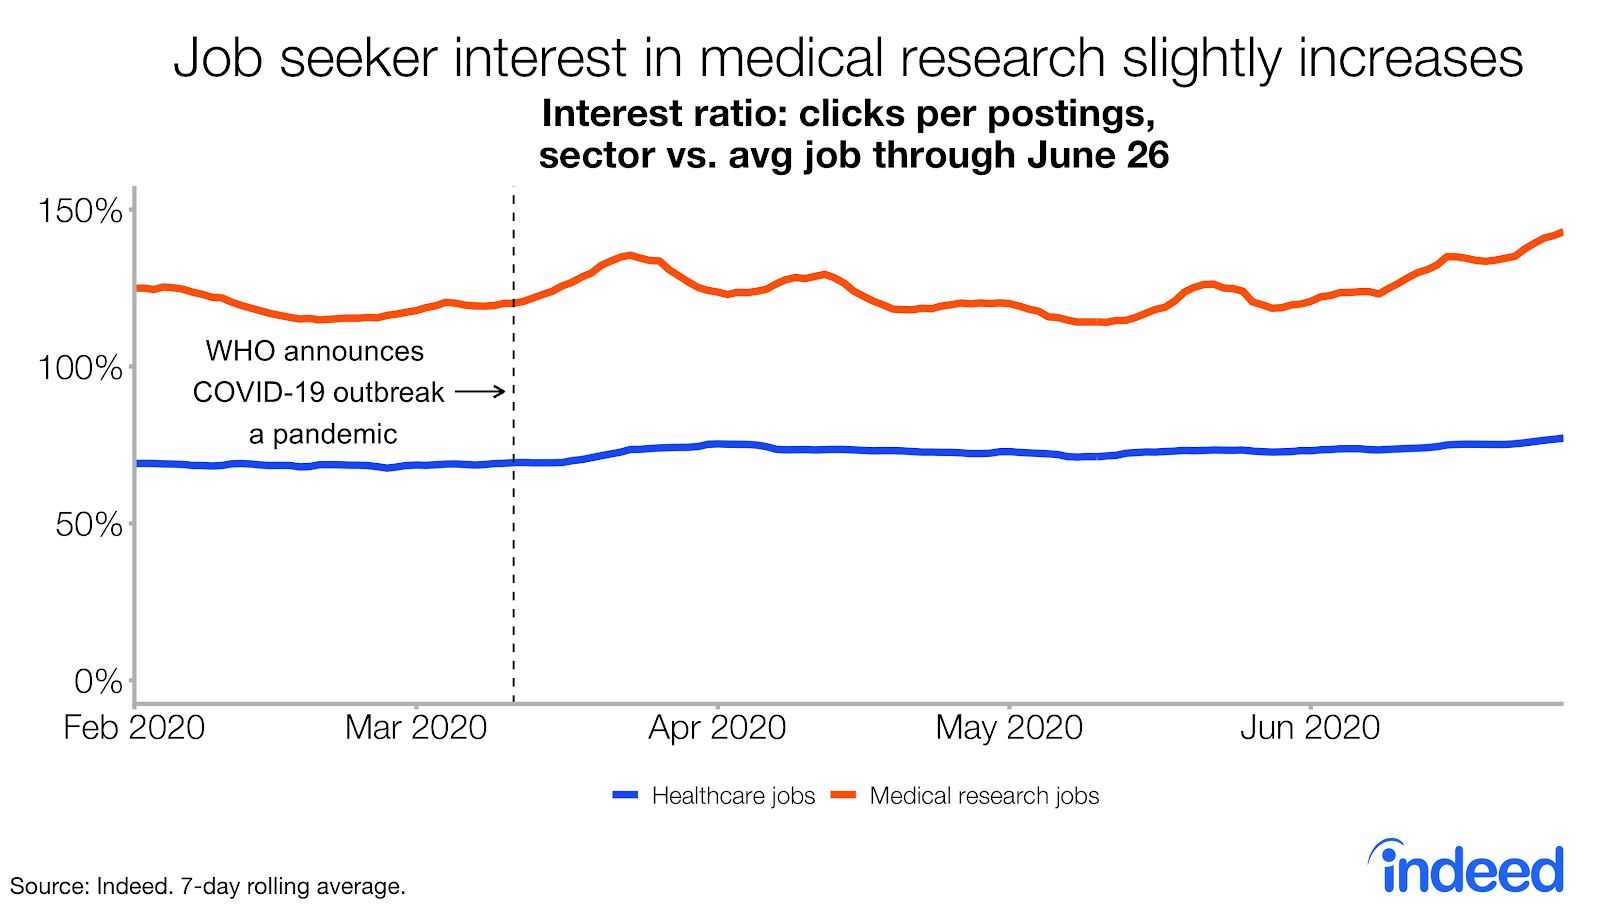 Job seeker interest in medical research slightly increases